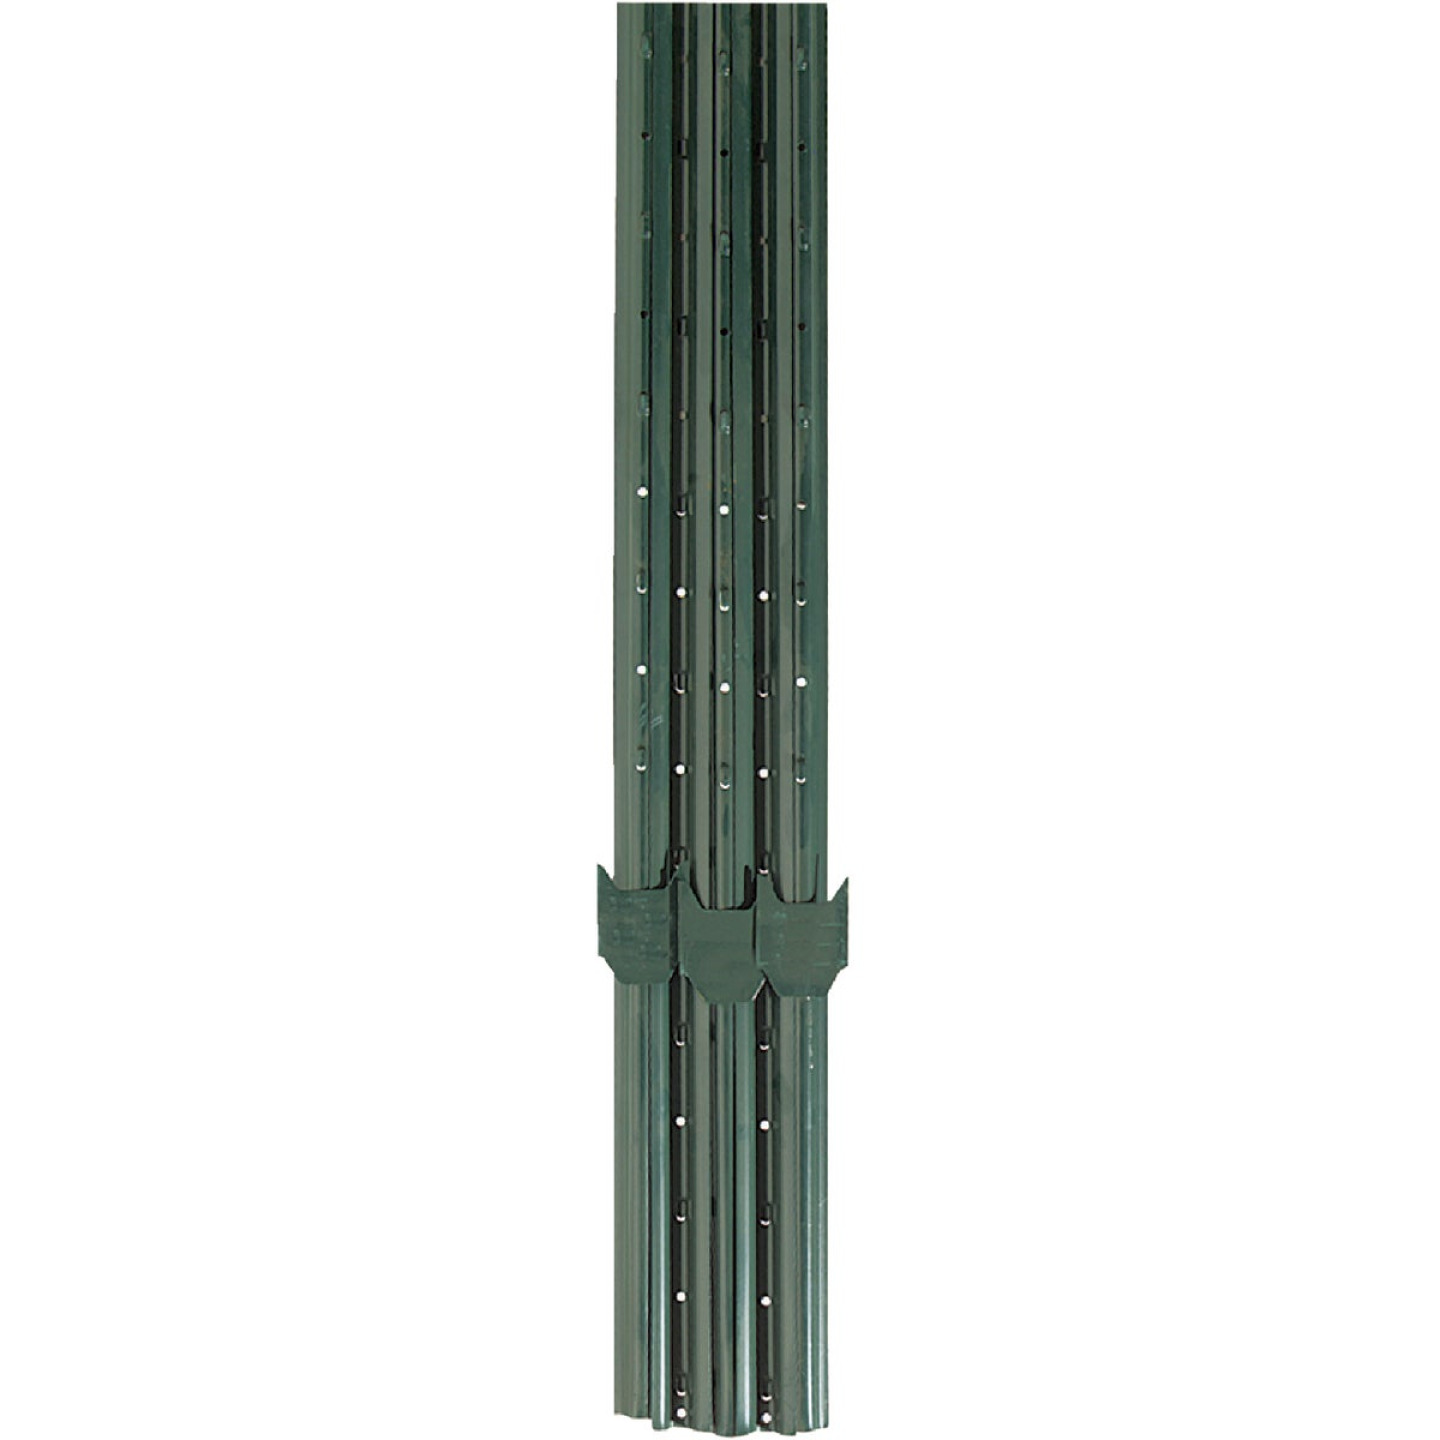 Do it Heavy-Duty 5 Ft. 13 Ga. Fence U-Post Image 1